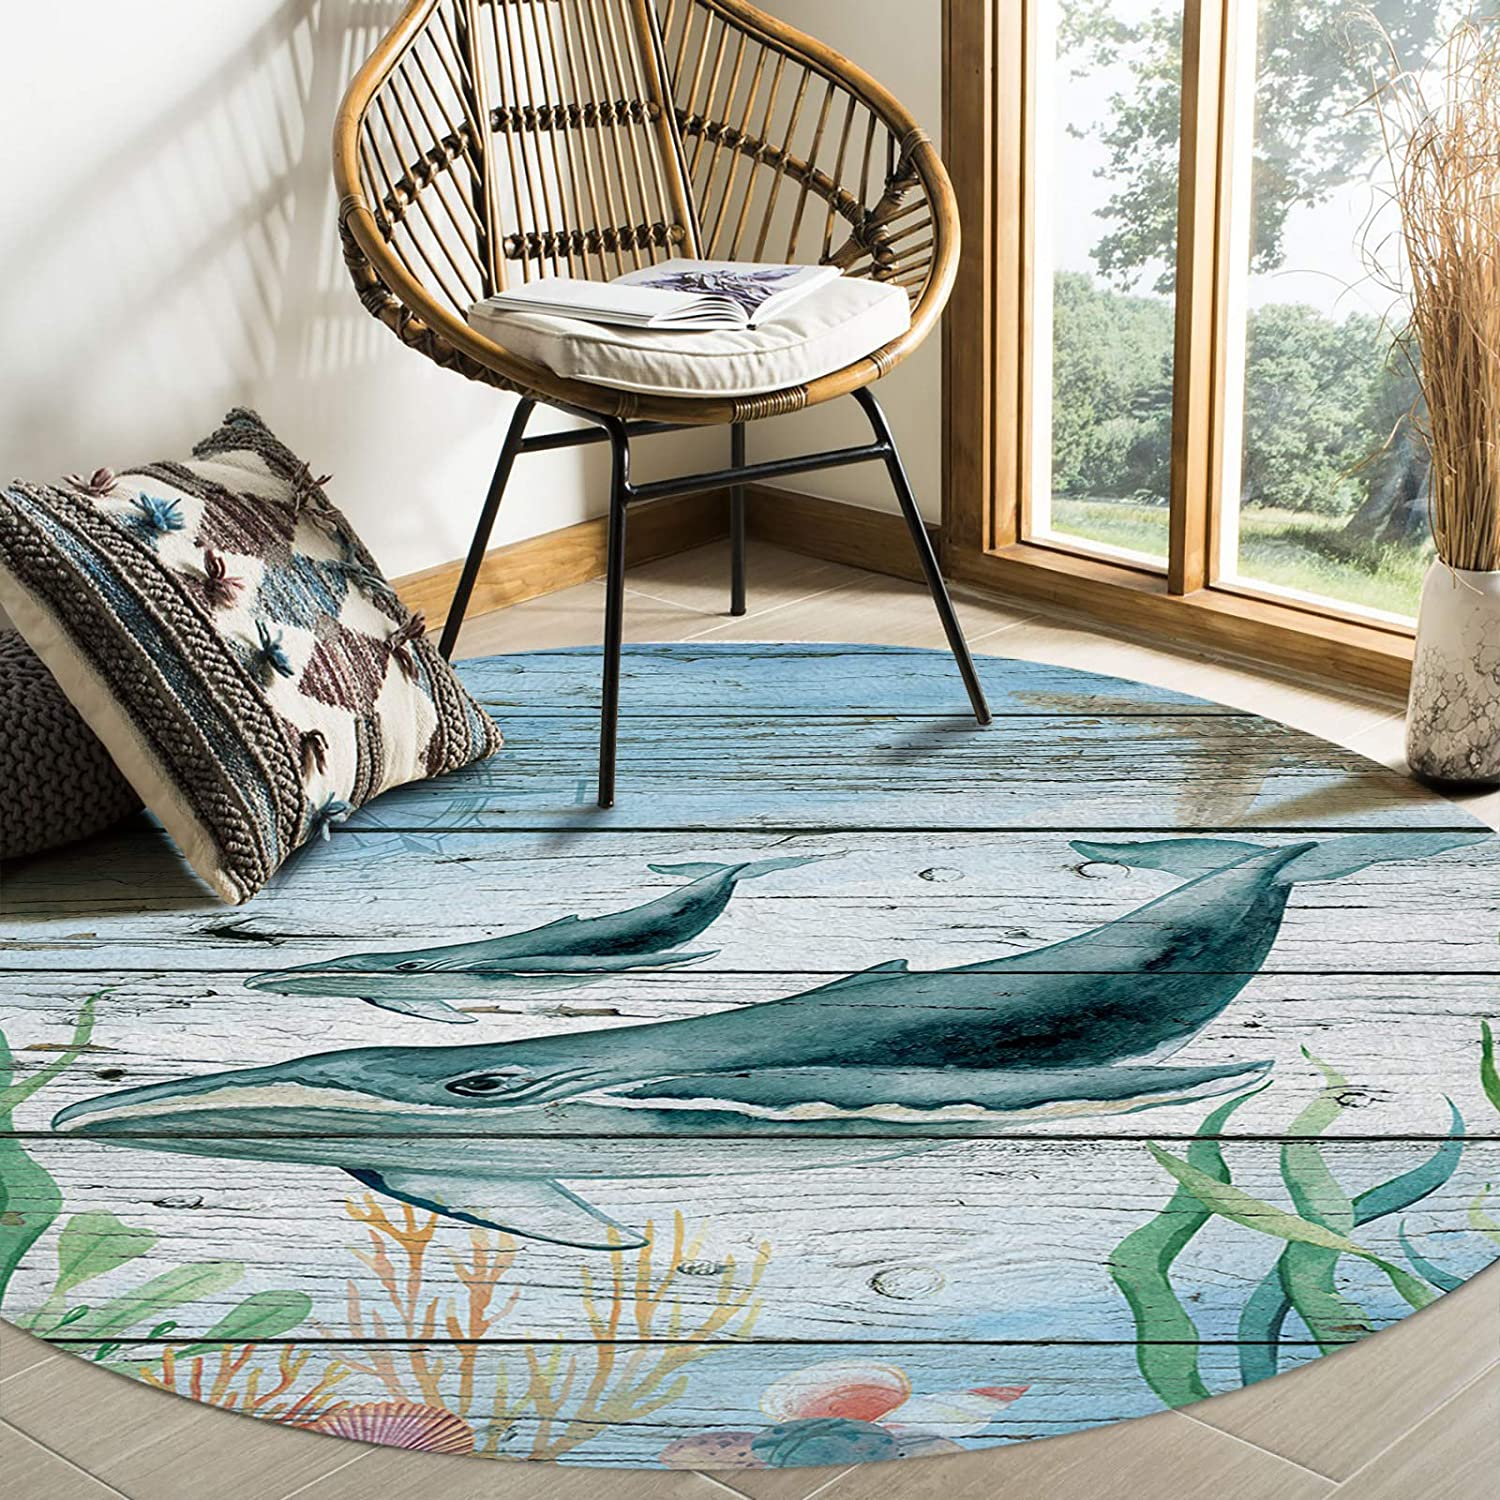 Singingin Round Area Max 75% OFF Rugs for Kids Max 48% OFF Animal Starf Ocean Room Whale